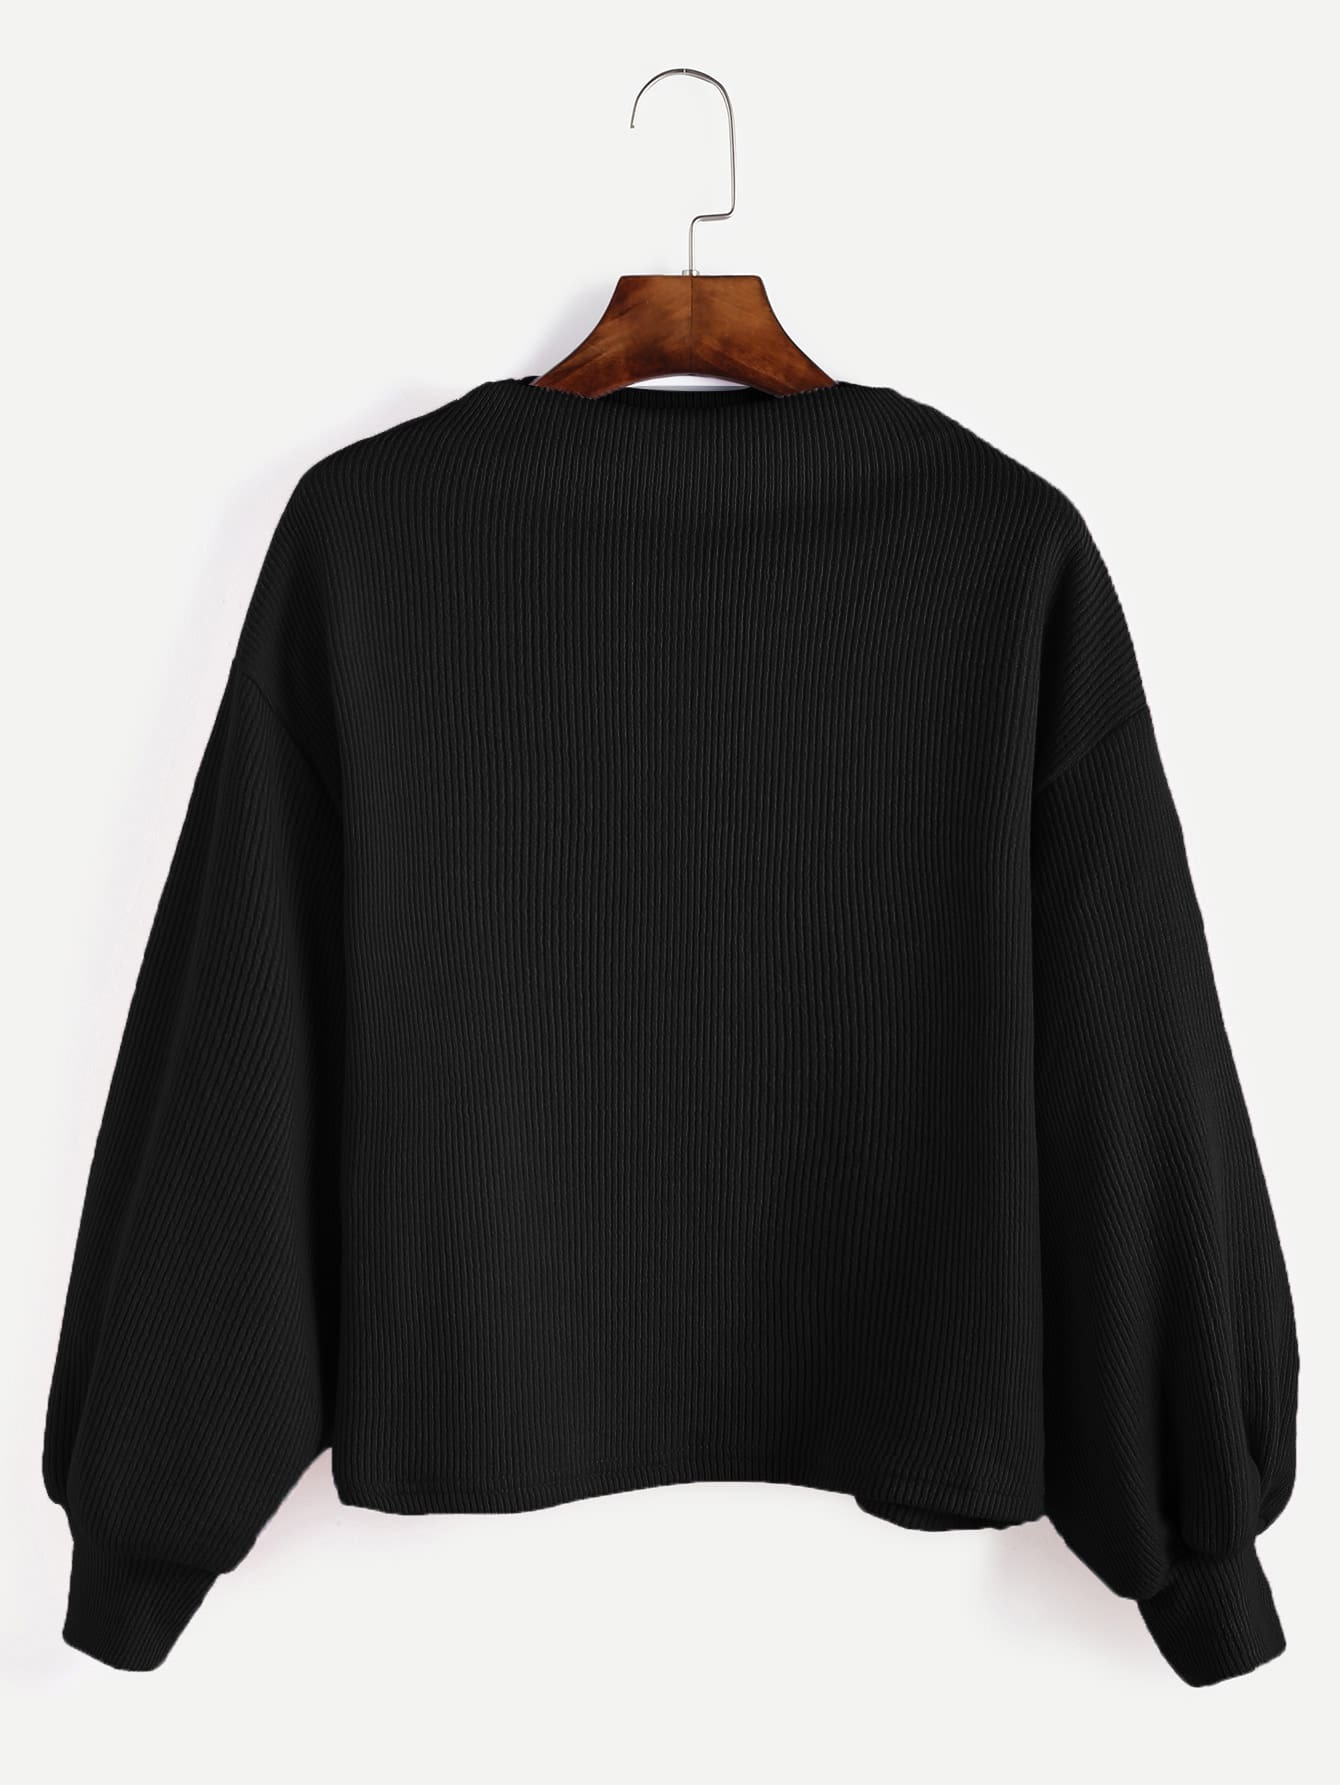 Black Ribbed Lantern Sleeve Sweater sweater161017004